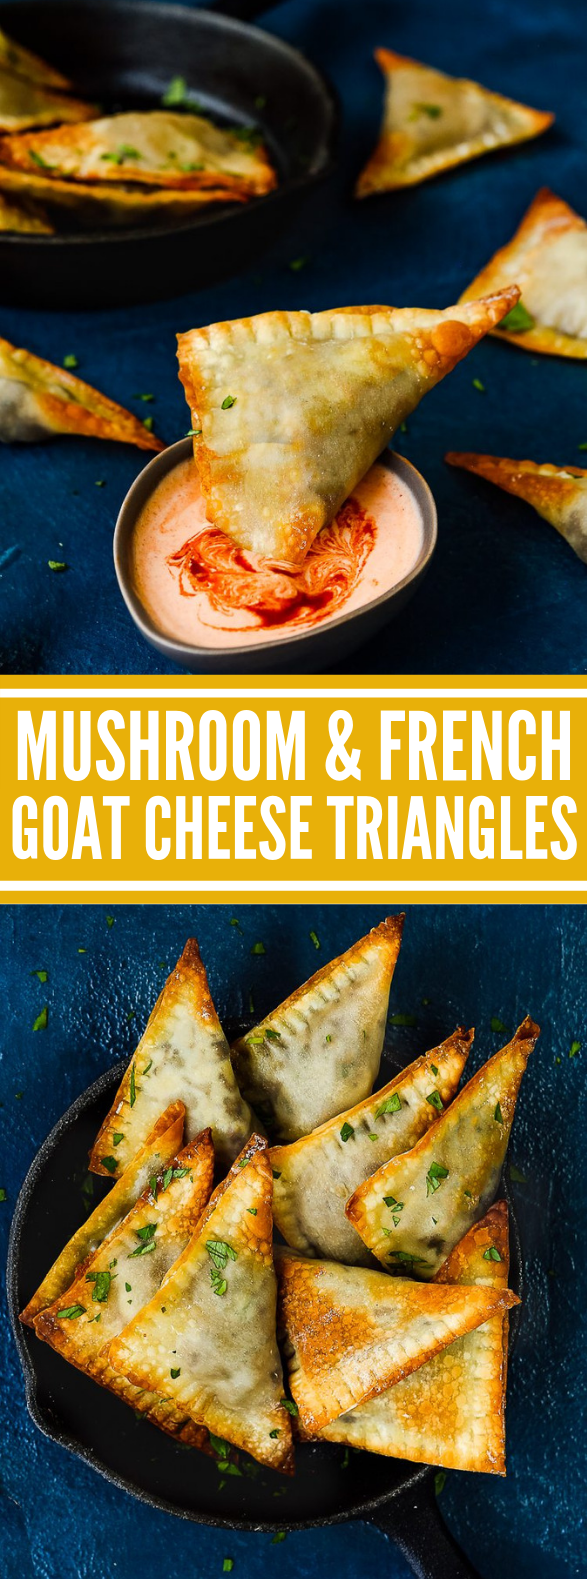 Mushroom and French Goat Cheese Triangles #vegetable #vegetarian